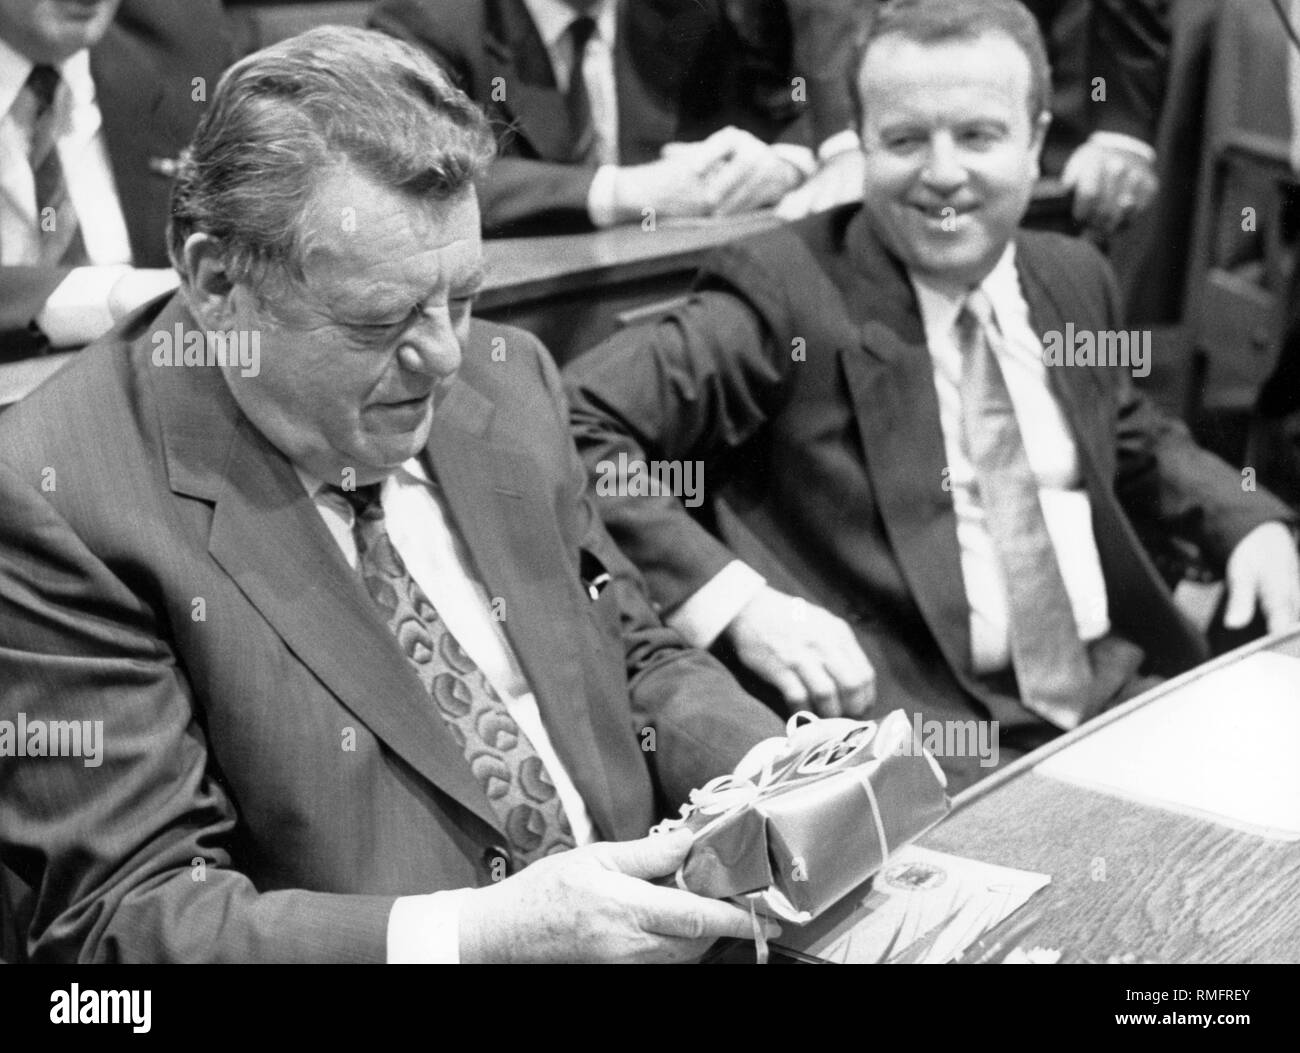 Bavaria's Prime Minister Franz Josef Strauss looks at a packet of contaminated hay from the Chernobyl disaster, which the Green parliamentary group presented to him in protest at the inaugural session of the Bavarian State Parliament. Right next to Strauss, Gerold Tandler, Group Chairman and CSU Secretary General. - Stock Image